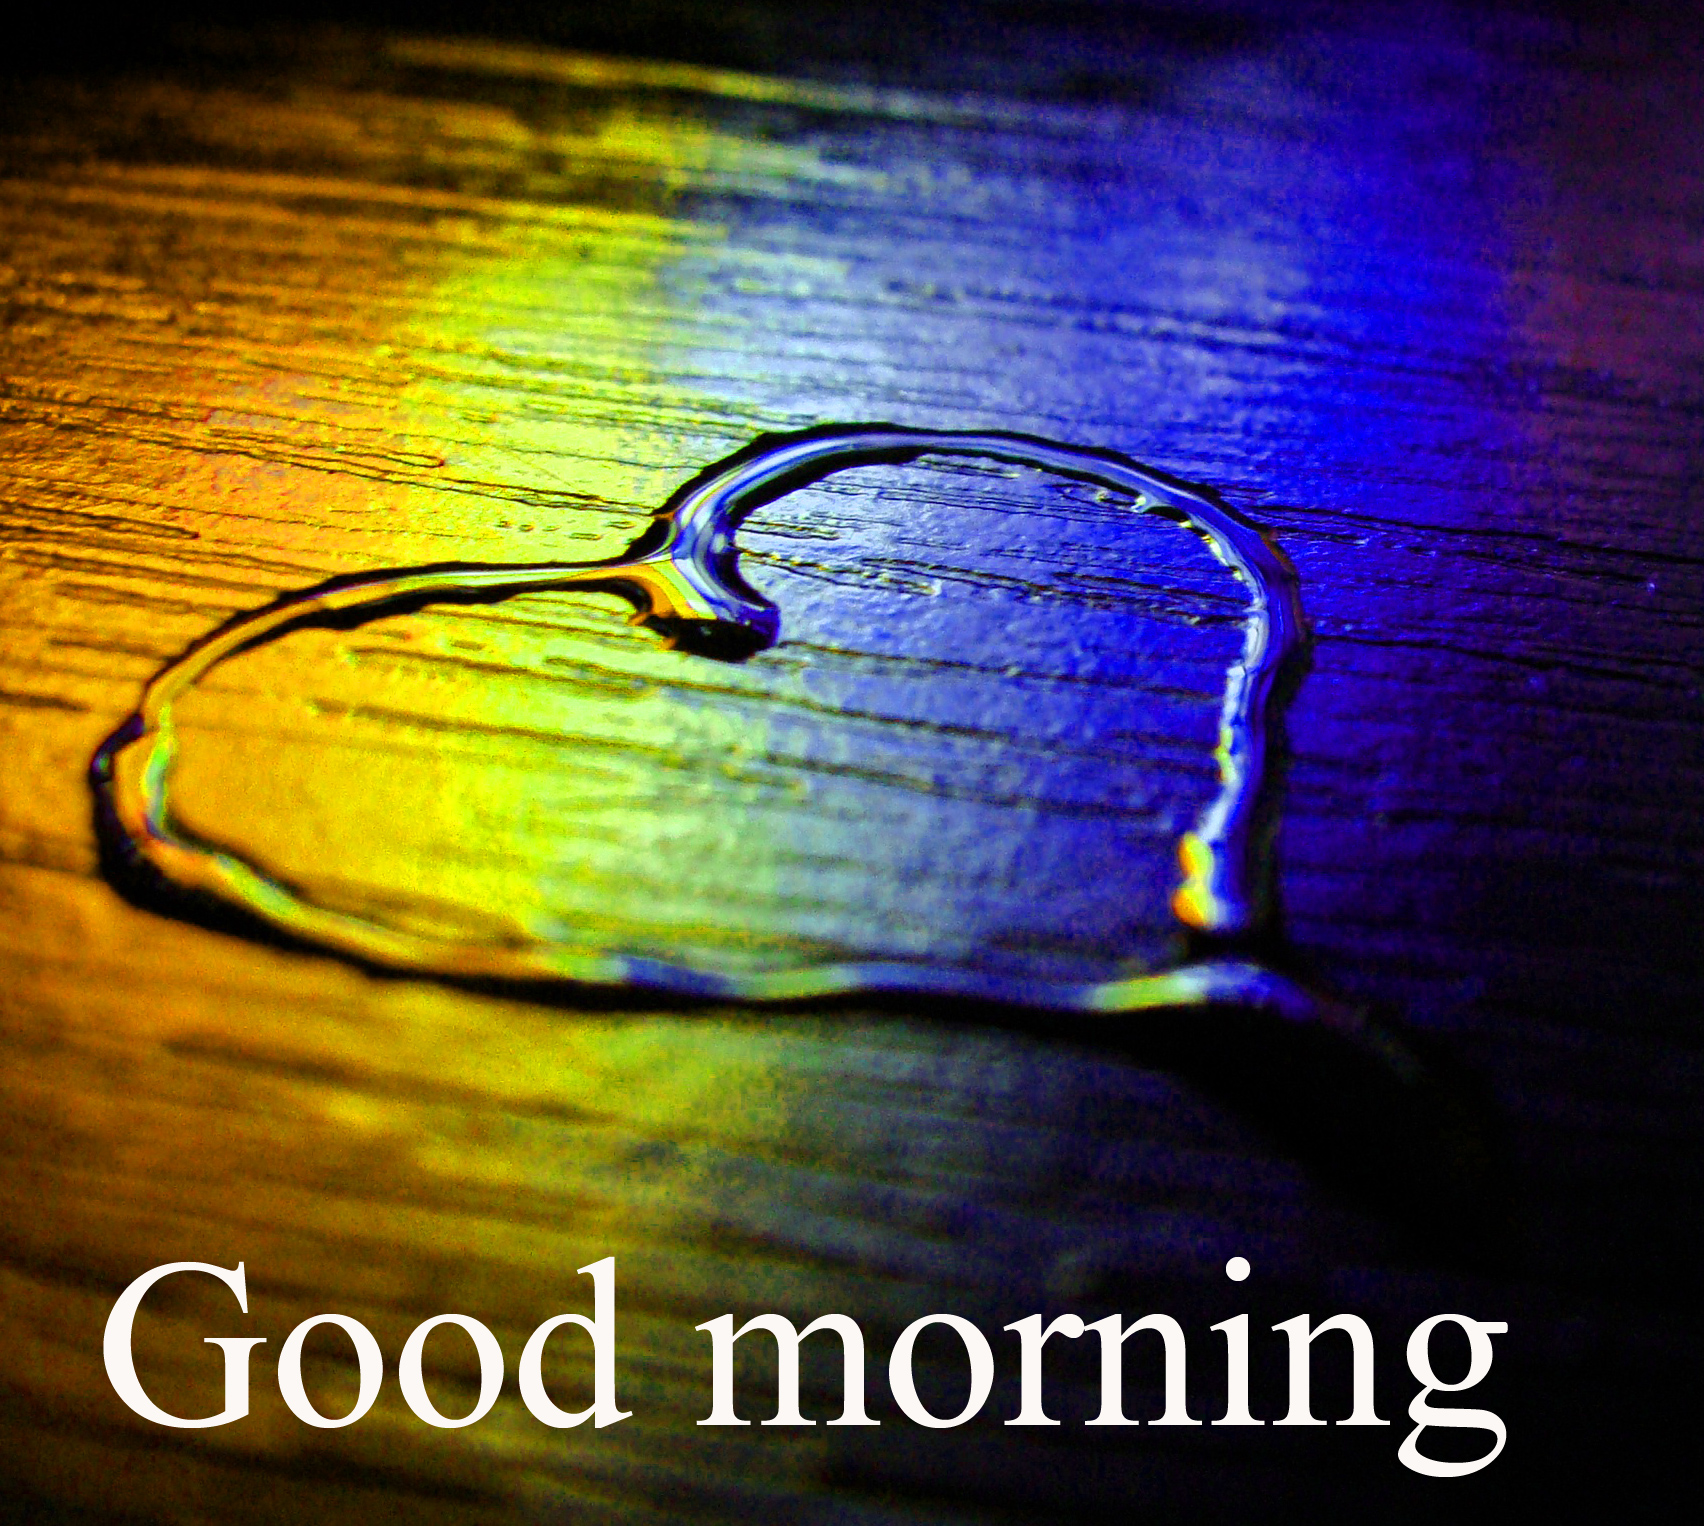 Special Good Morning Wishes Photo Wallpaper Images Free Download